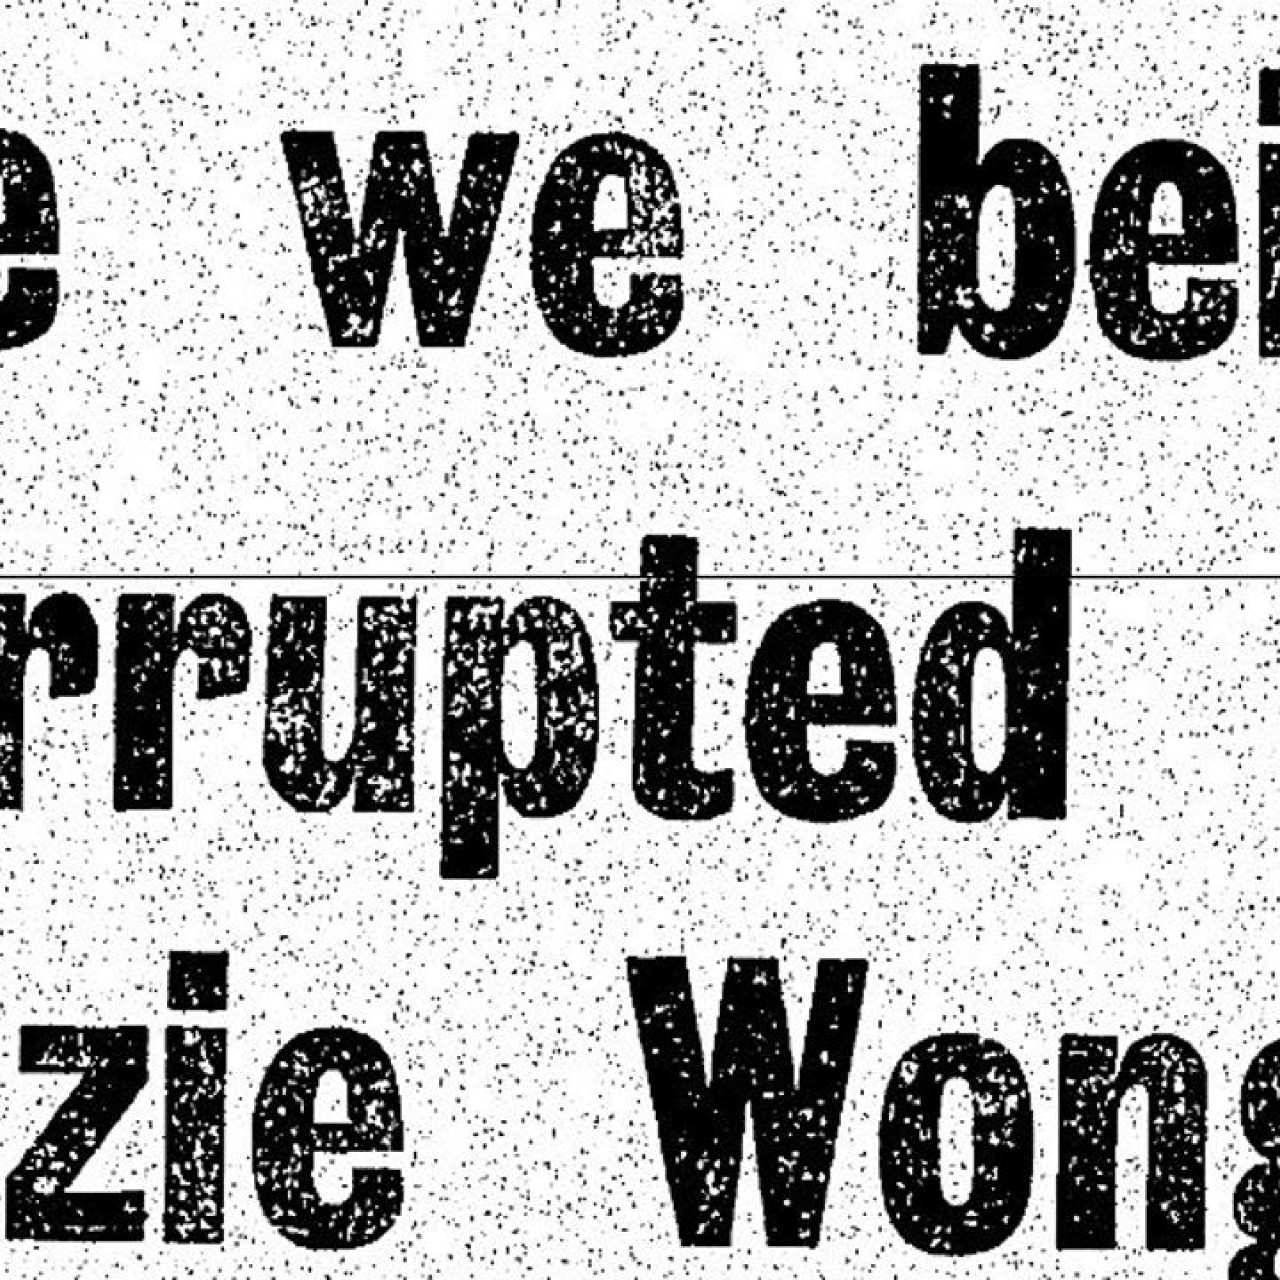 The World of Suzie Wong, 55 years on: archives opened to